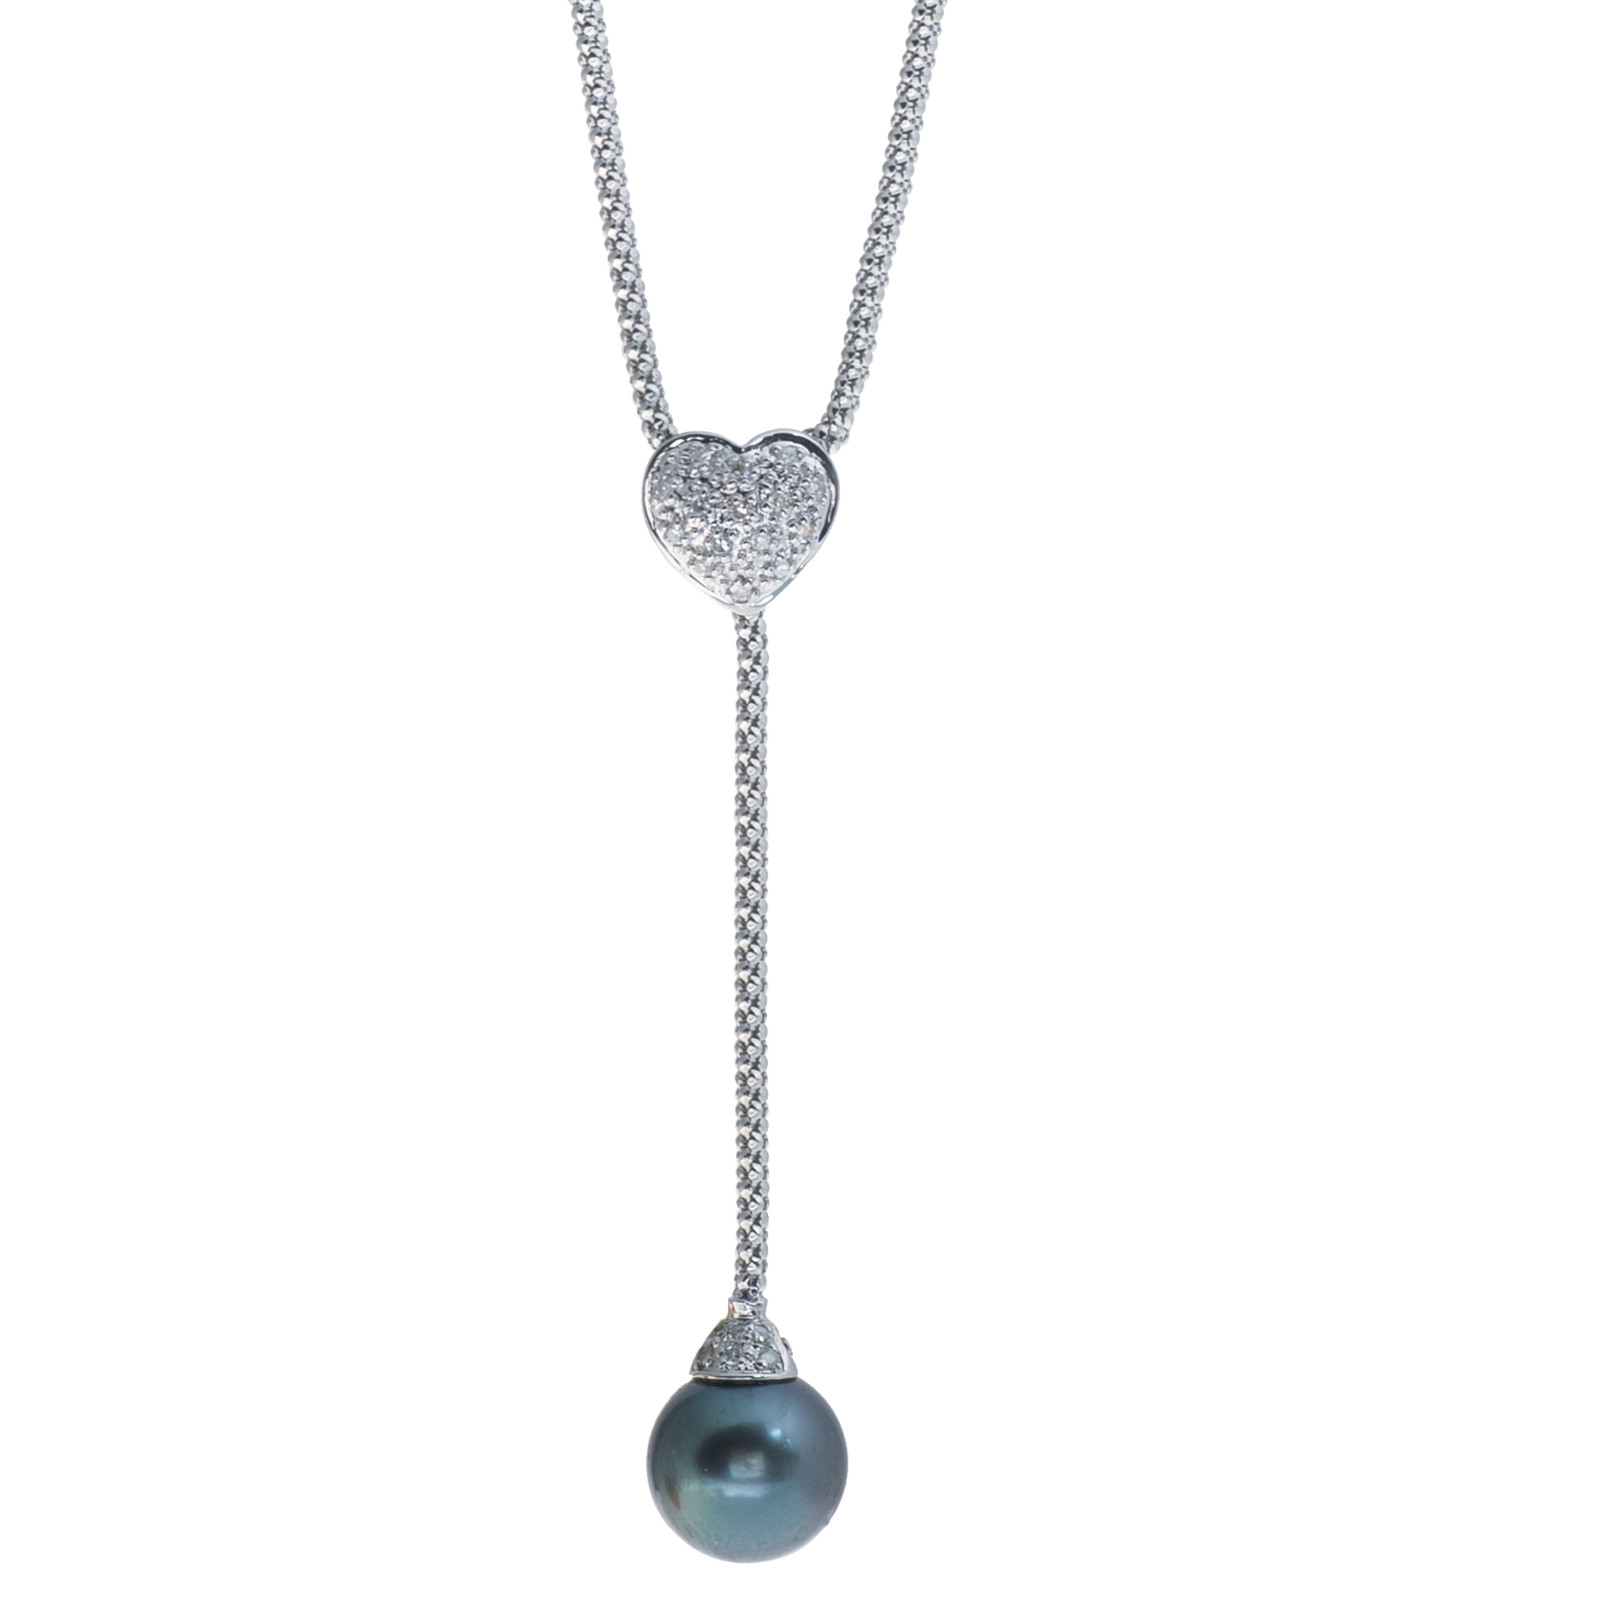 Vintage Tahitian Pearl & Diamond Necklace